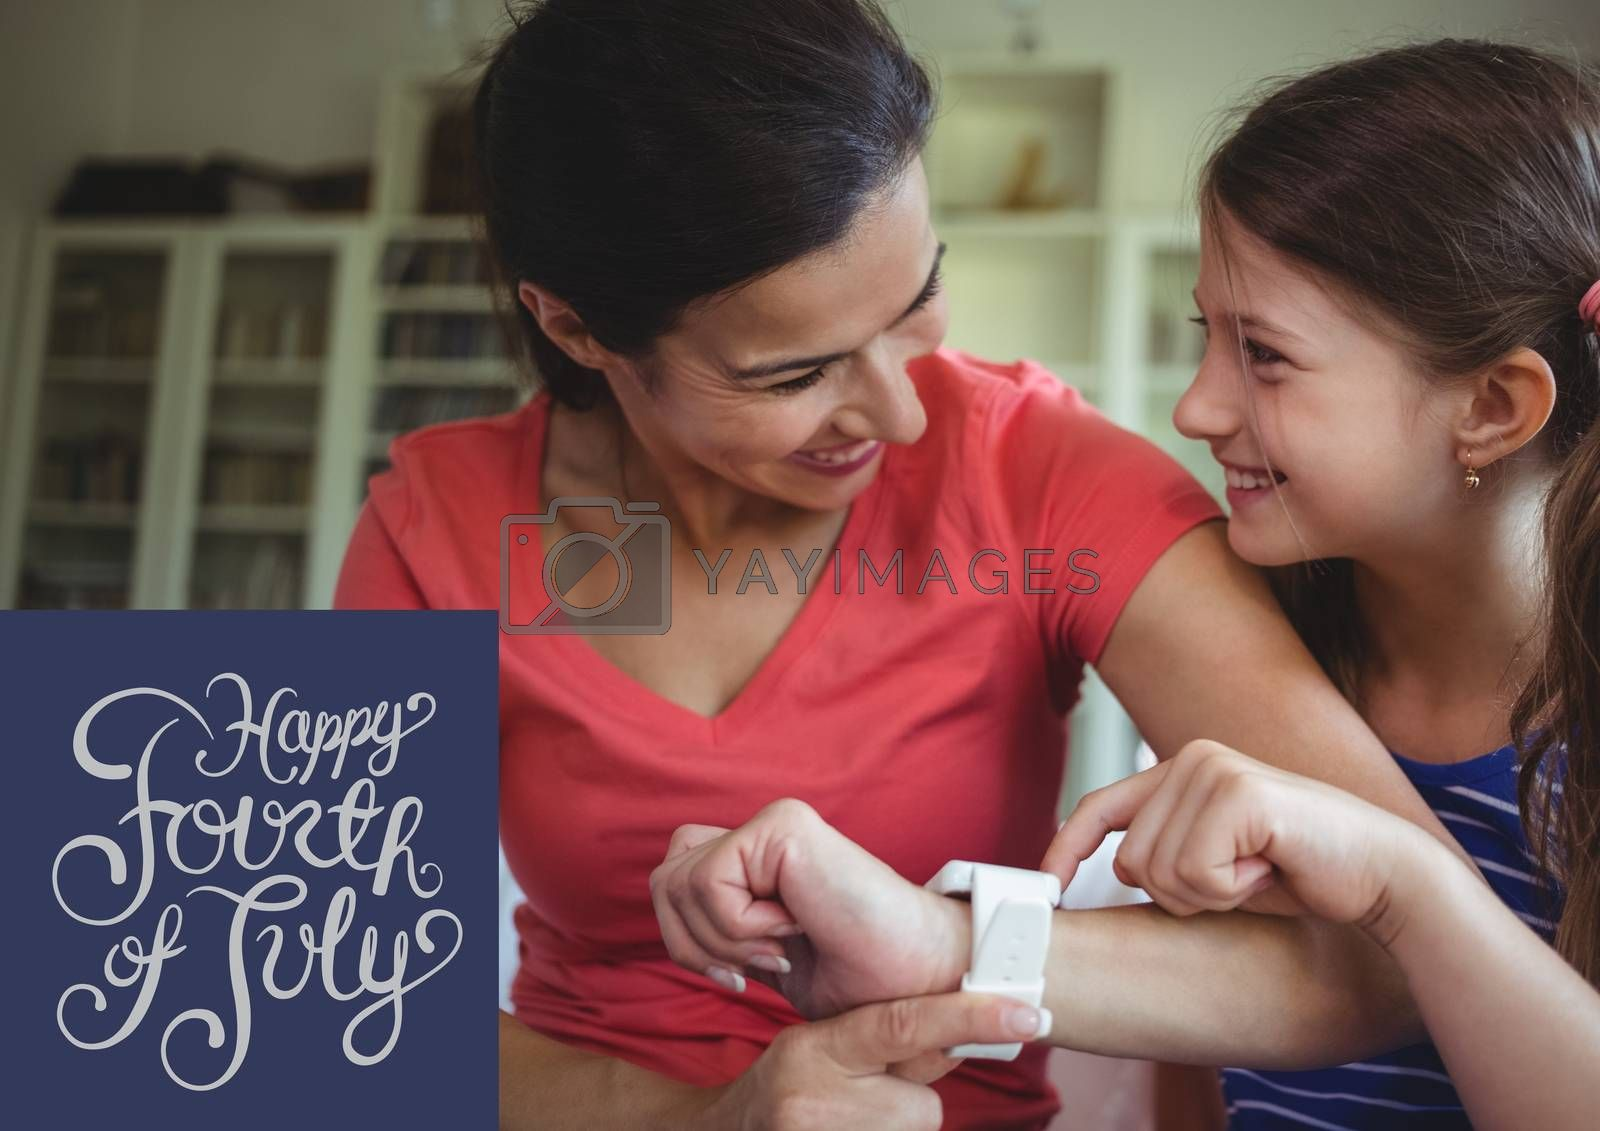 Royalty free image of Smiling girl and her mum celebrating 4th of July by Wavebreakmedia